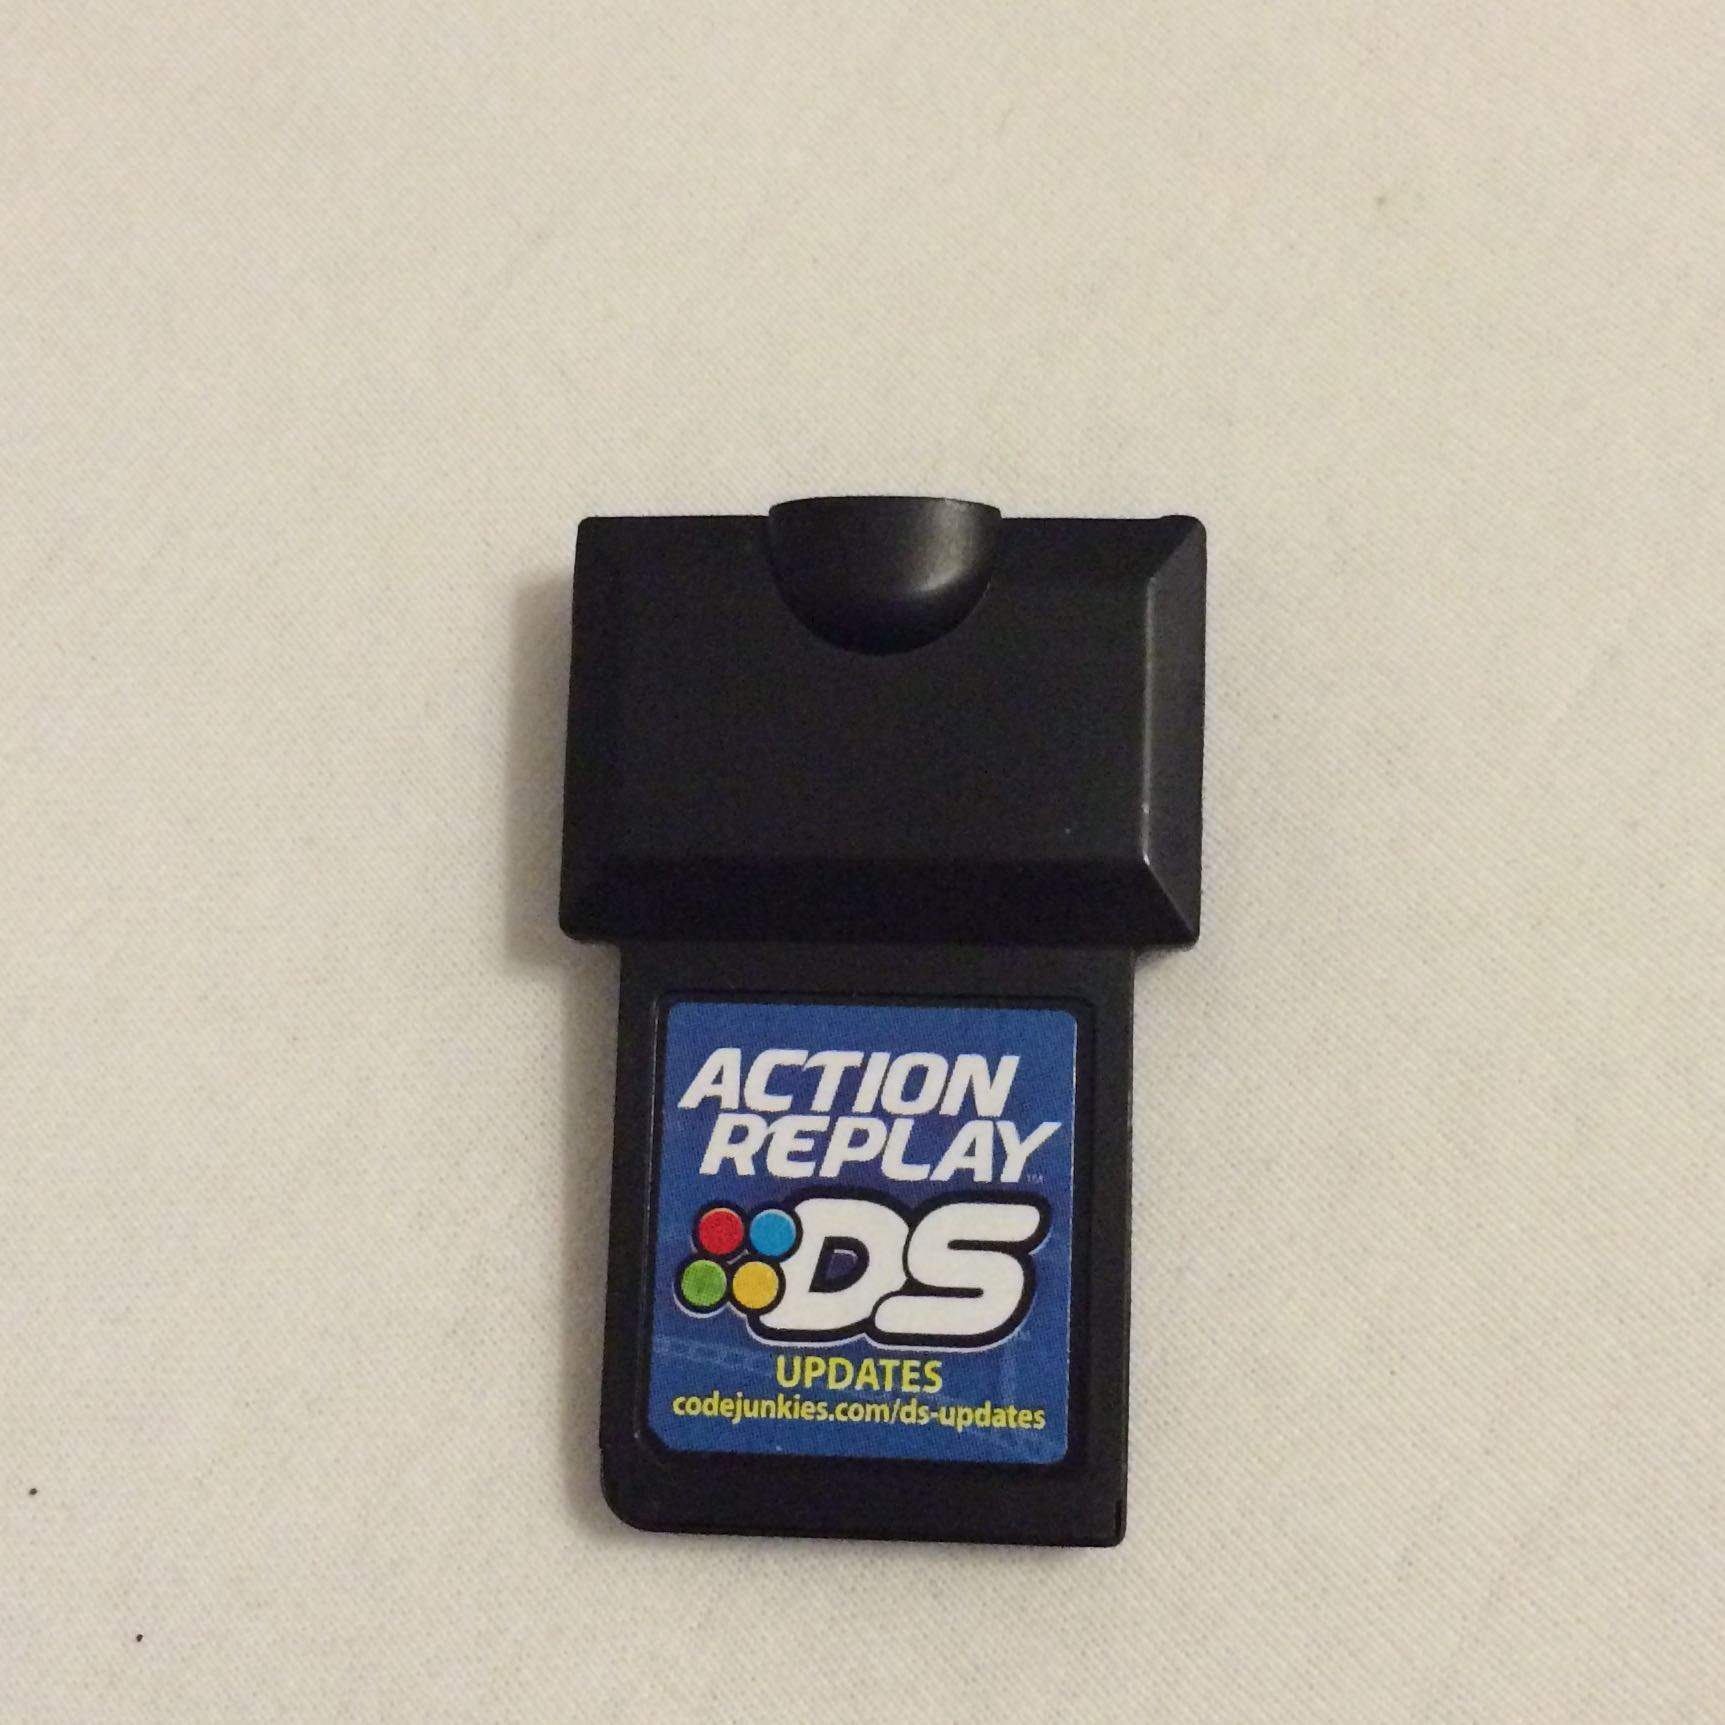 firmware action replay 3ds code